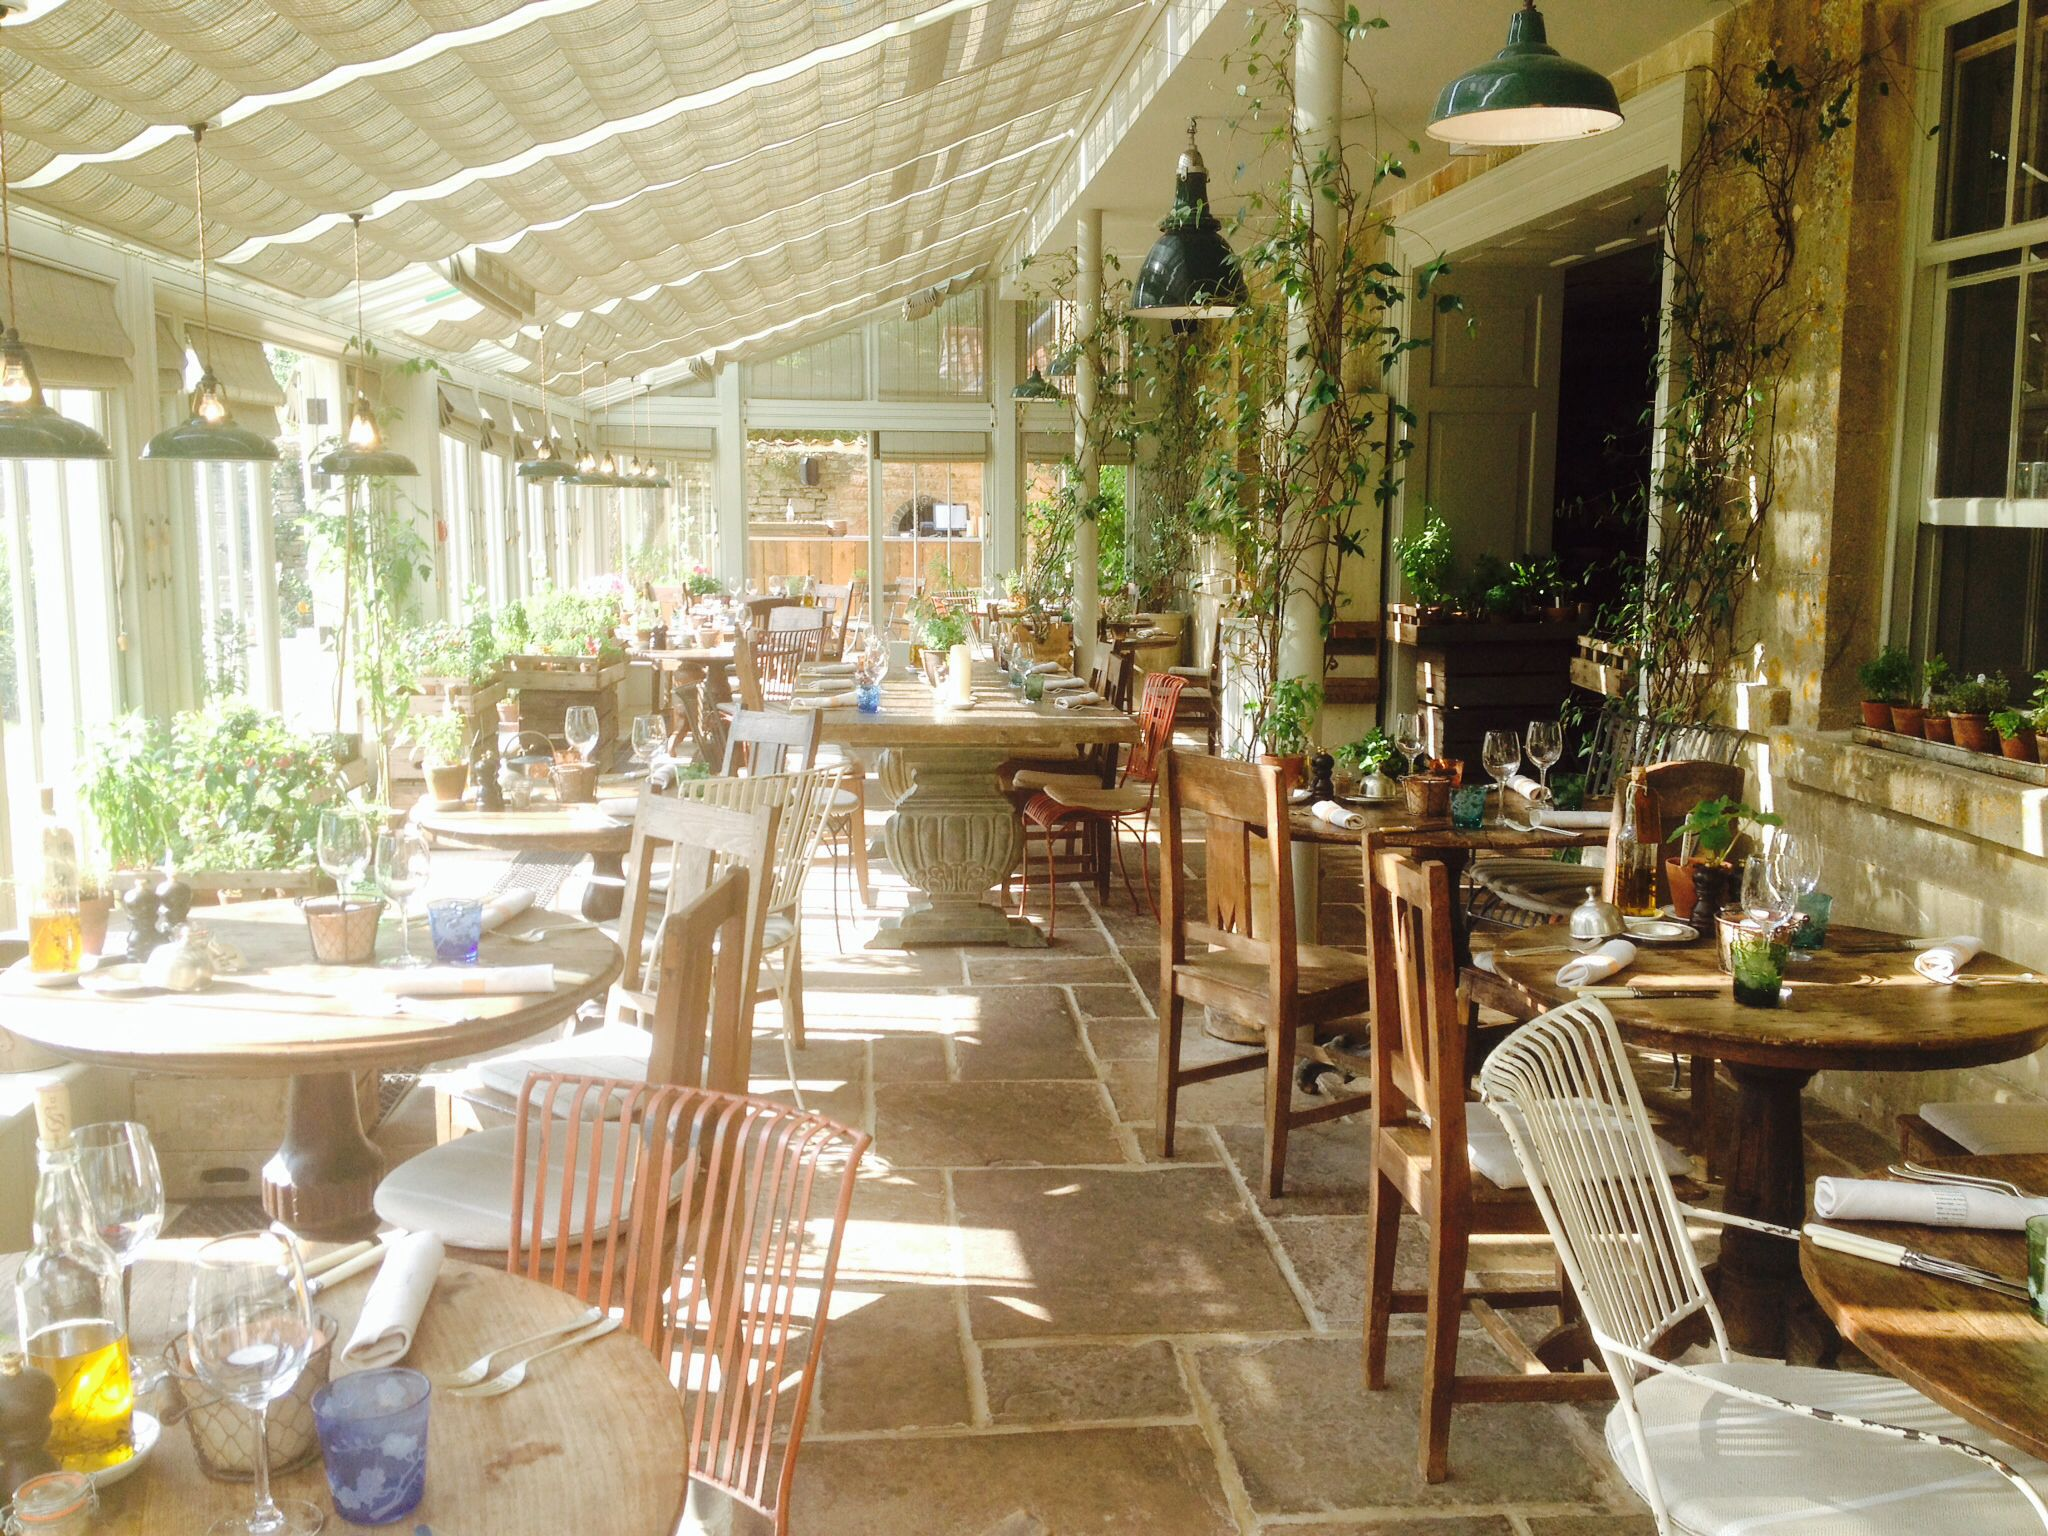 The Pig Hotel near Bath. UK (With images) The pig hotel